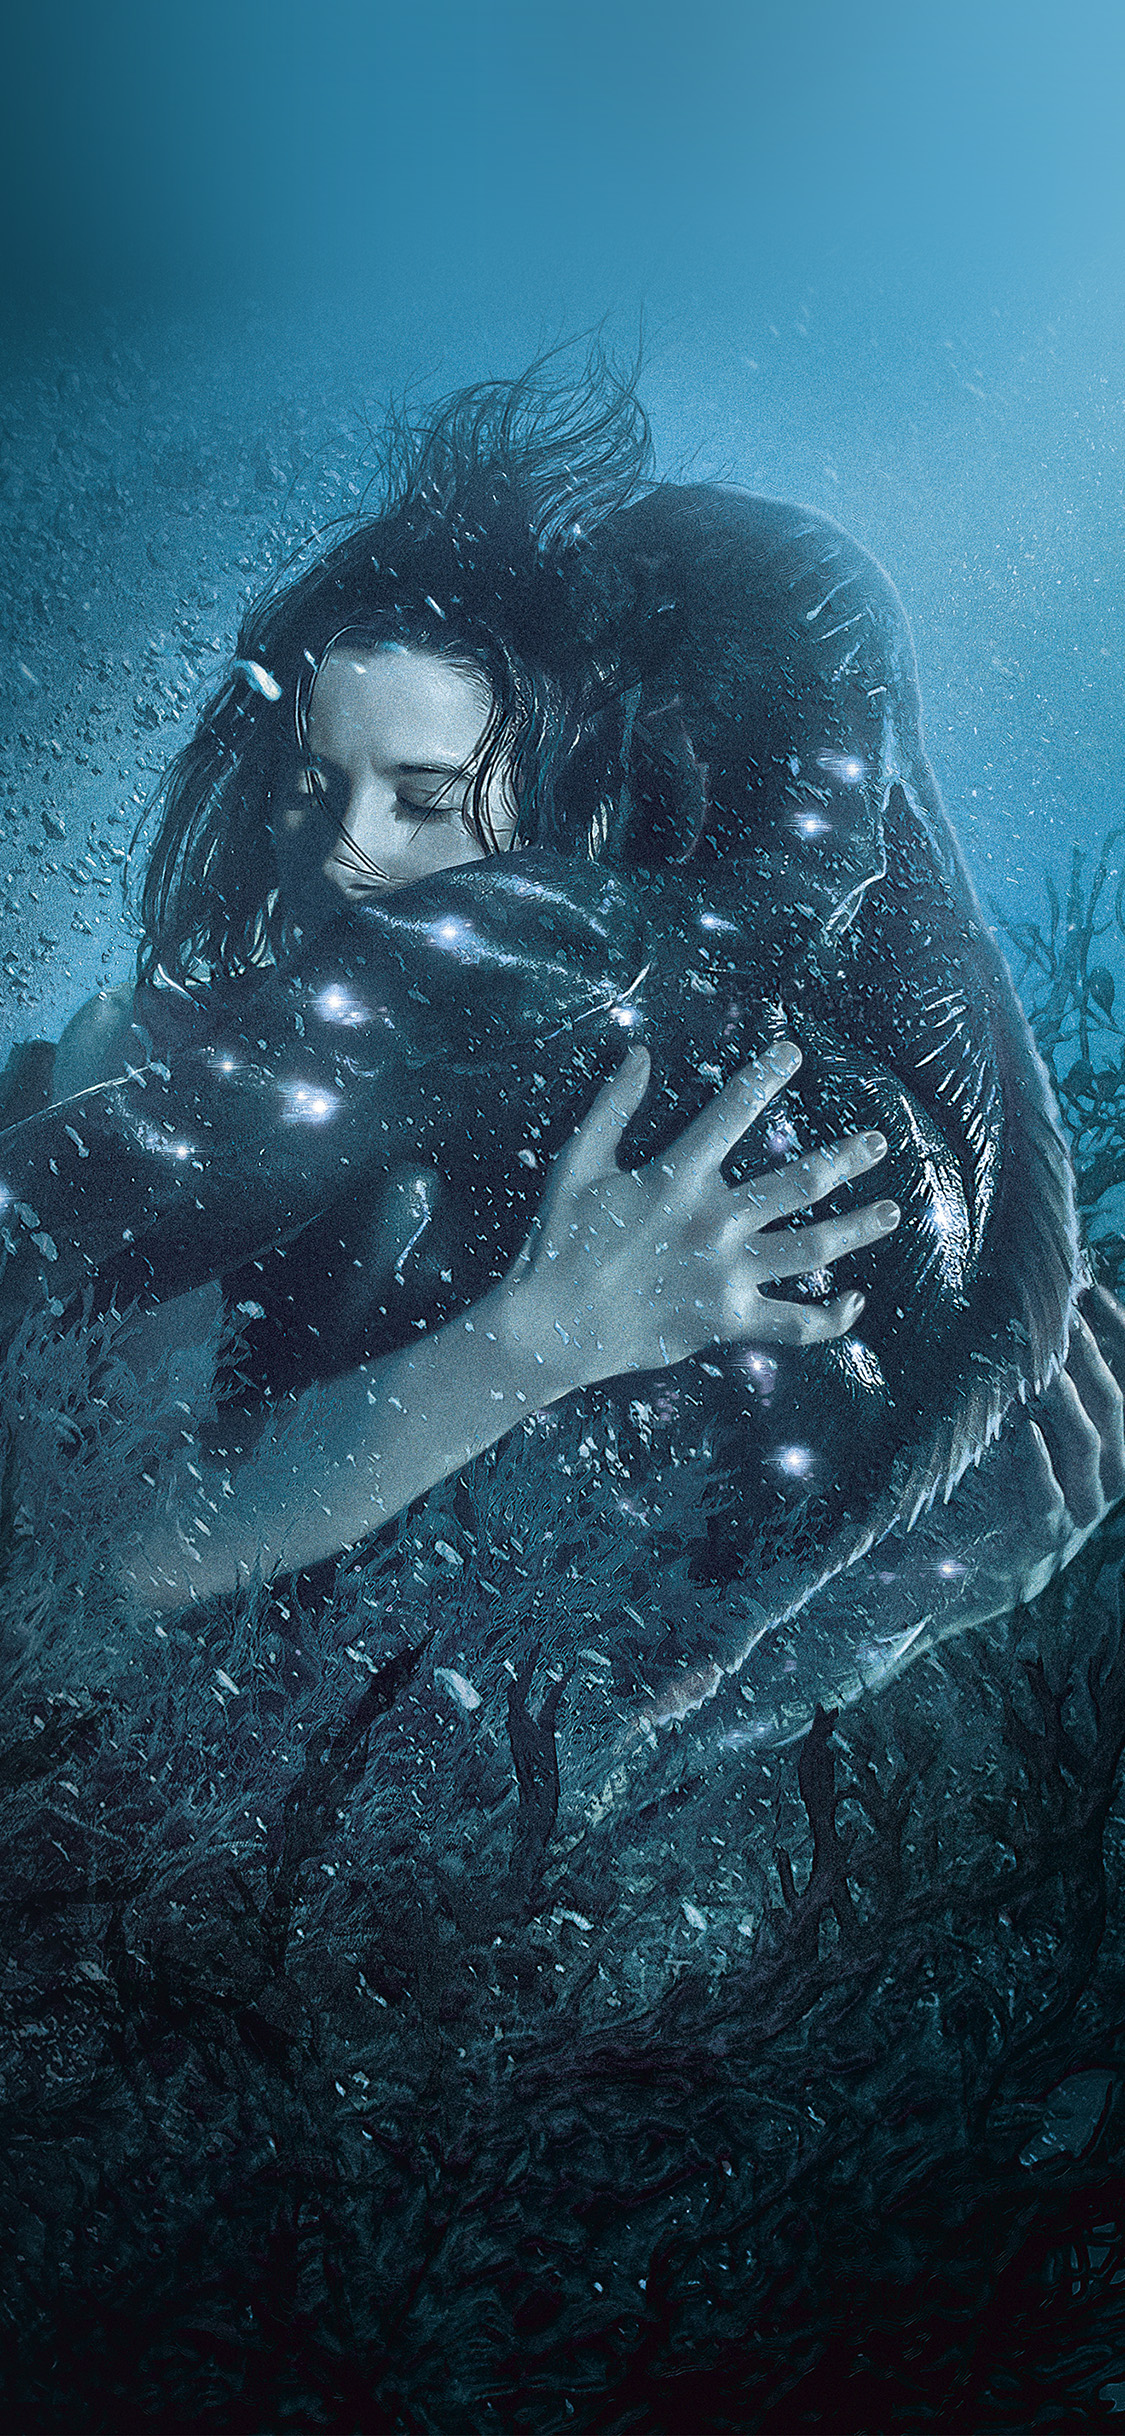 Be40 shape of water film movie blue art illustration wallpaper - Classic art wallpaper iphone 5 ...